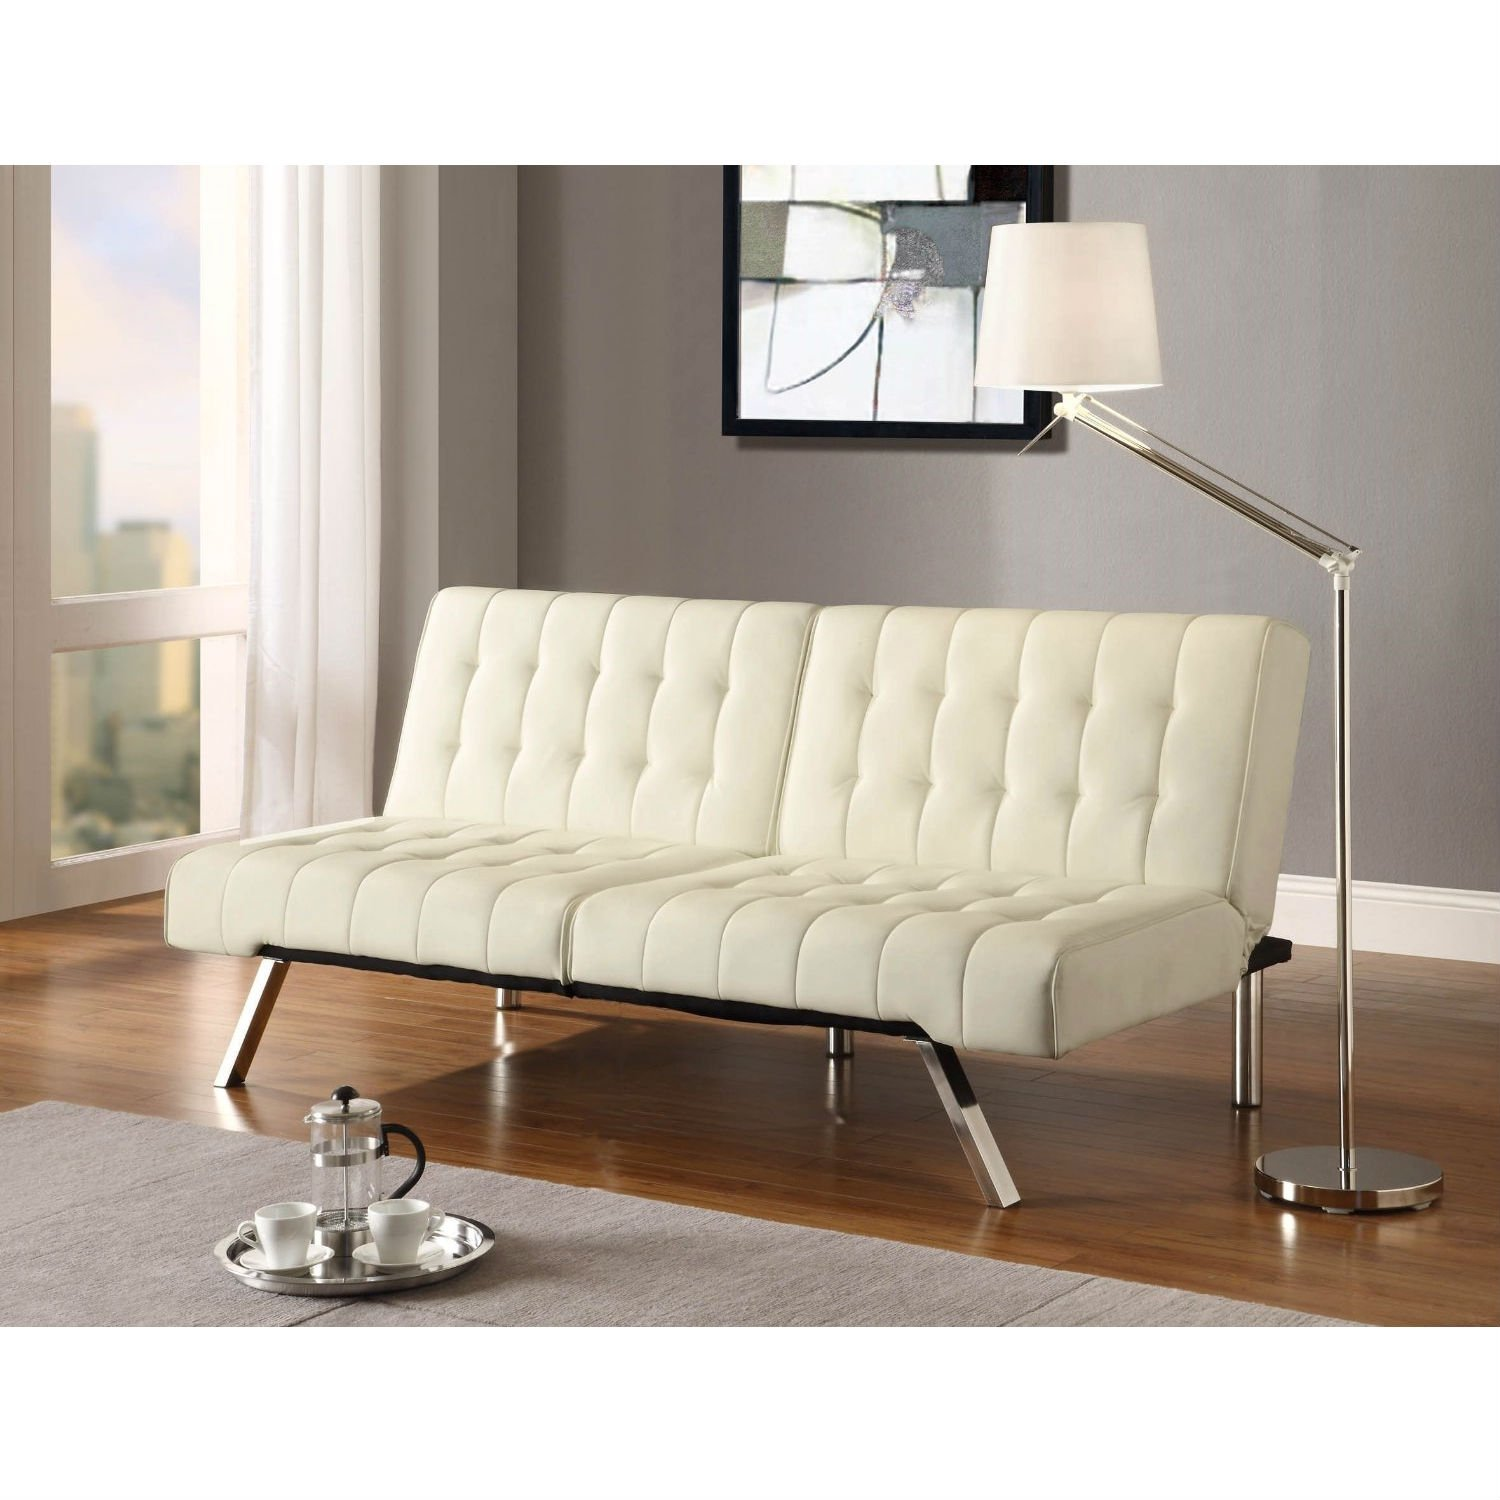 This Split Back Modern Futon Style Sleeper Sofa Bed In Vanilla Faux Leather Is A Versatile Multi Position Split Bac Futon Living Room Leather Futon Futon Sofa